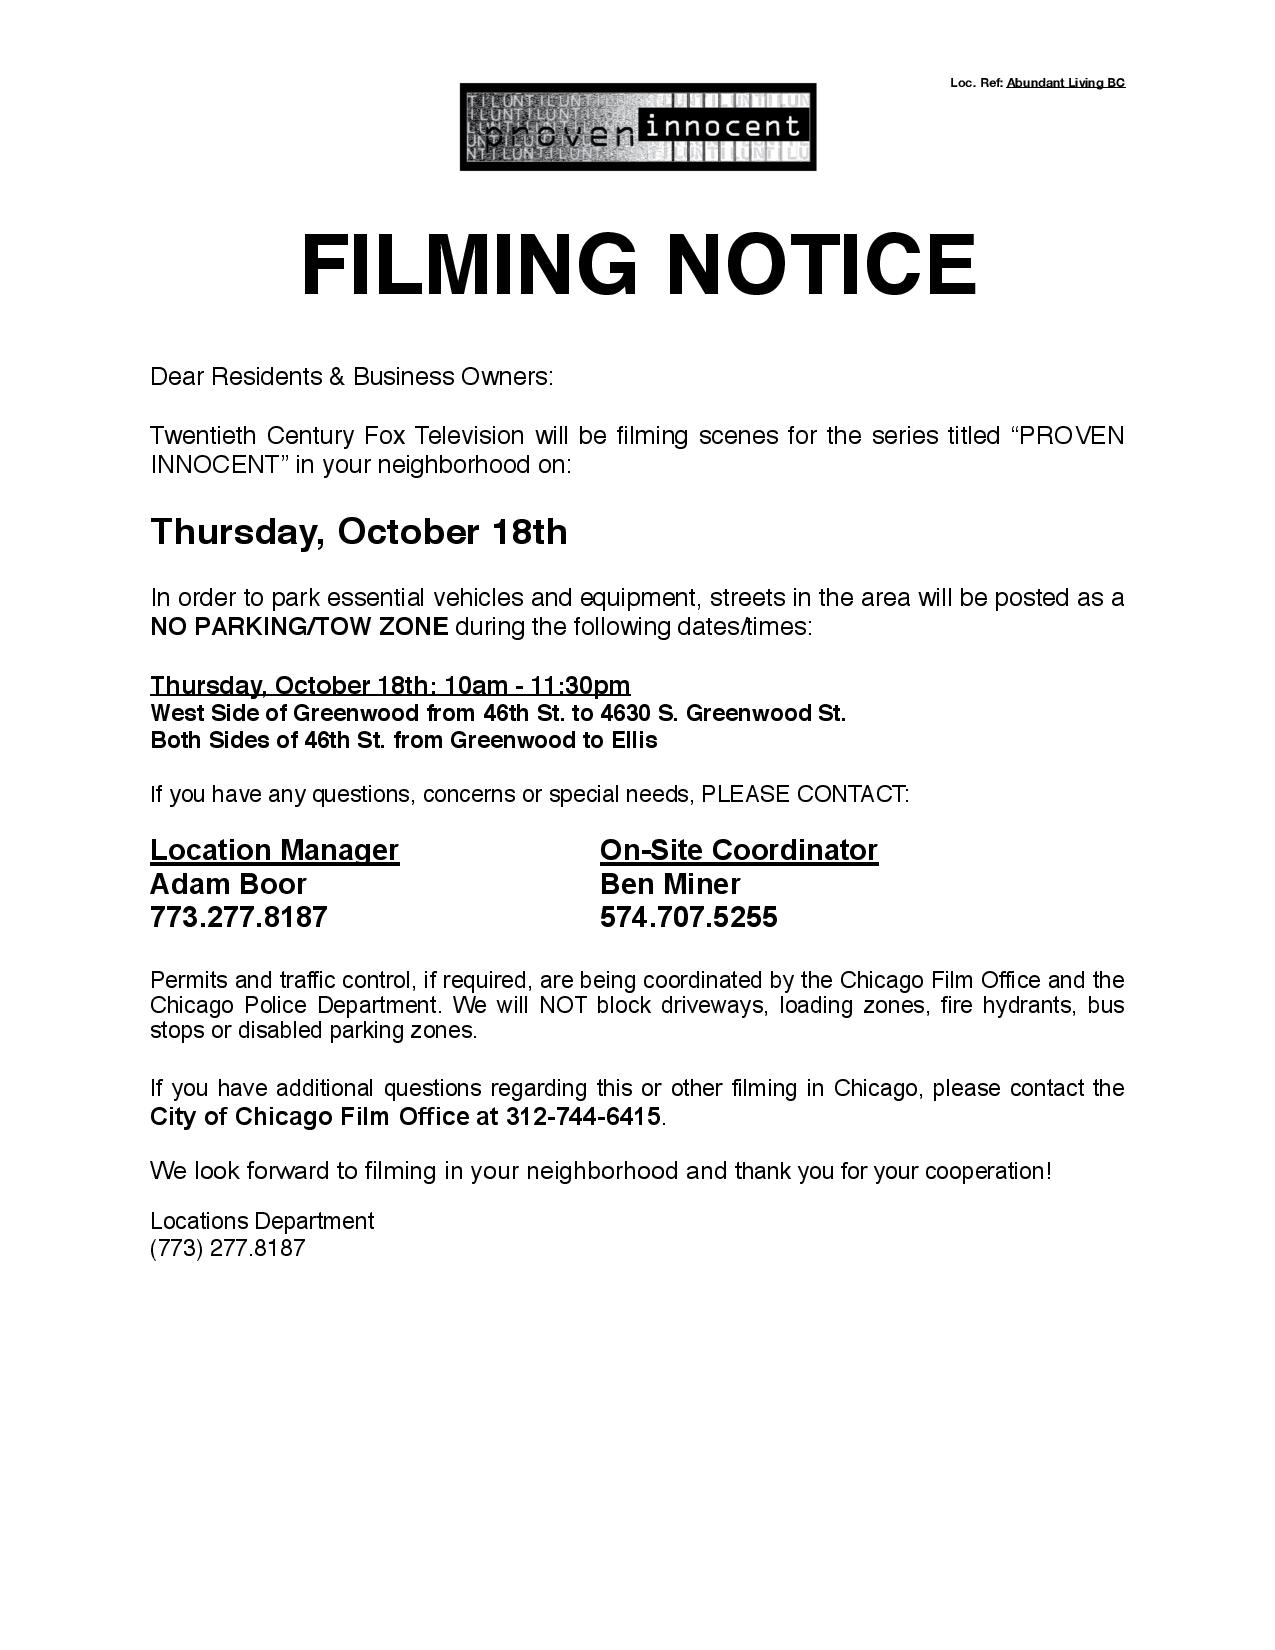 Abundance Living BC PI Filming Notice (10.18.18) -page-001